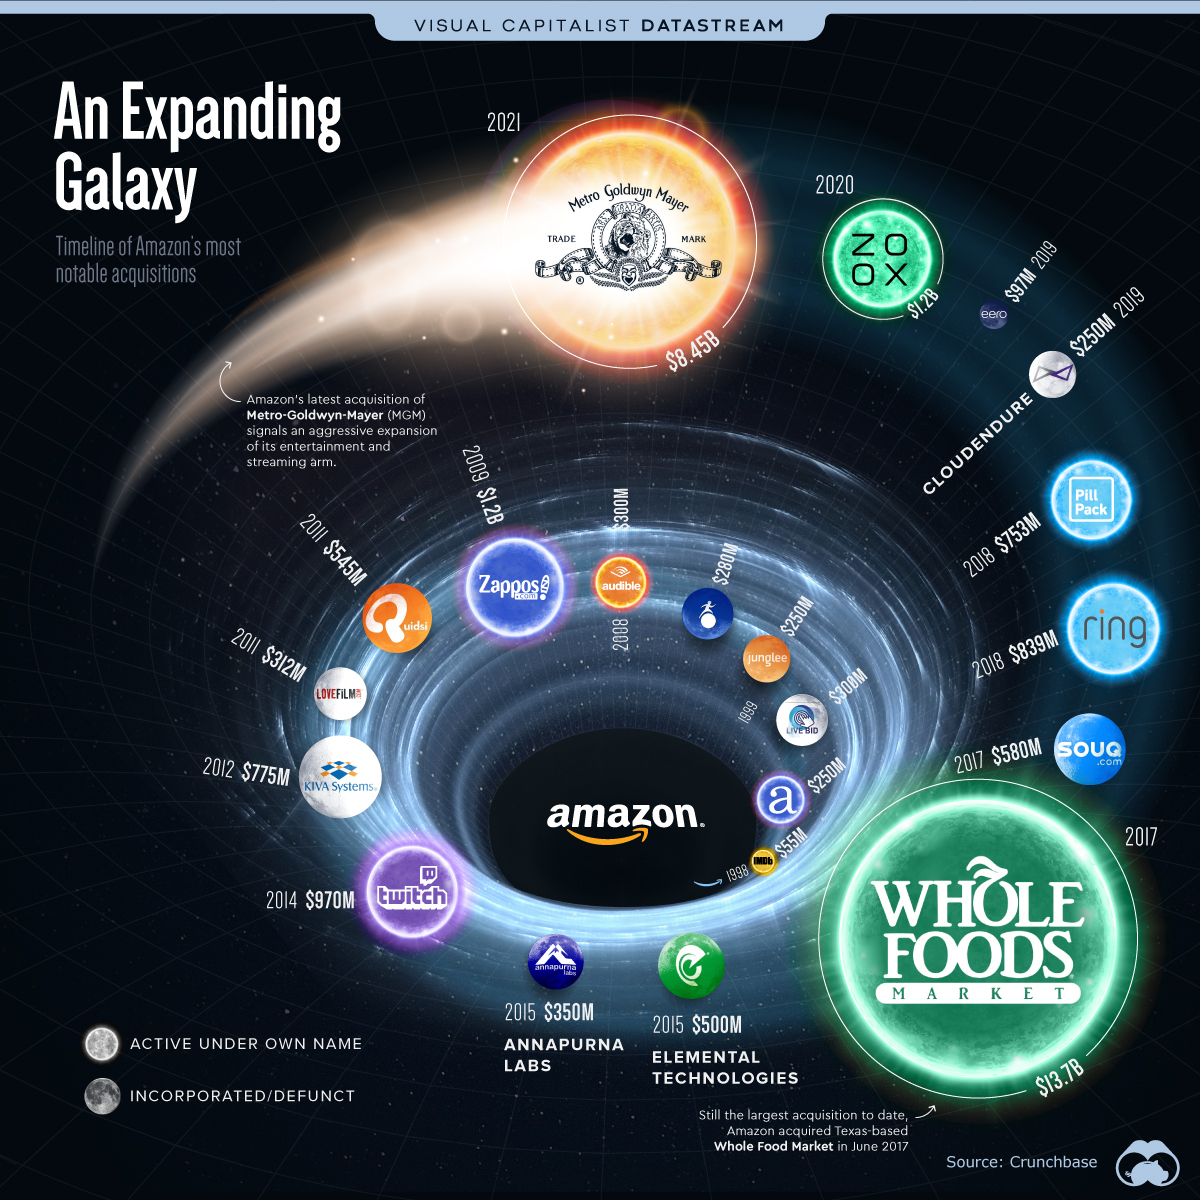 Most Notable Acquisitions by Amazon